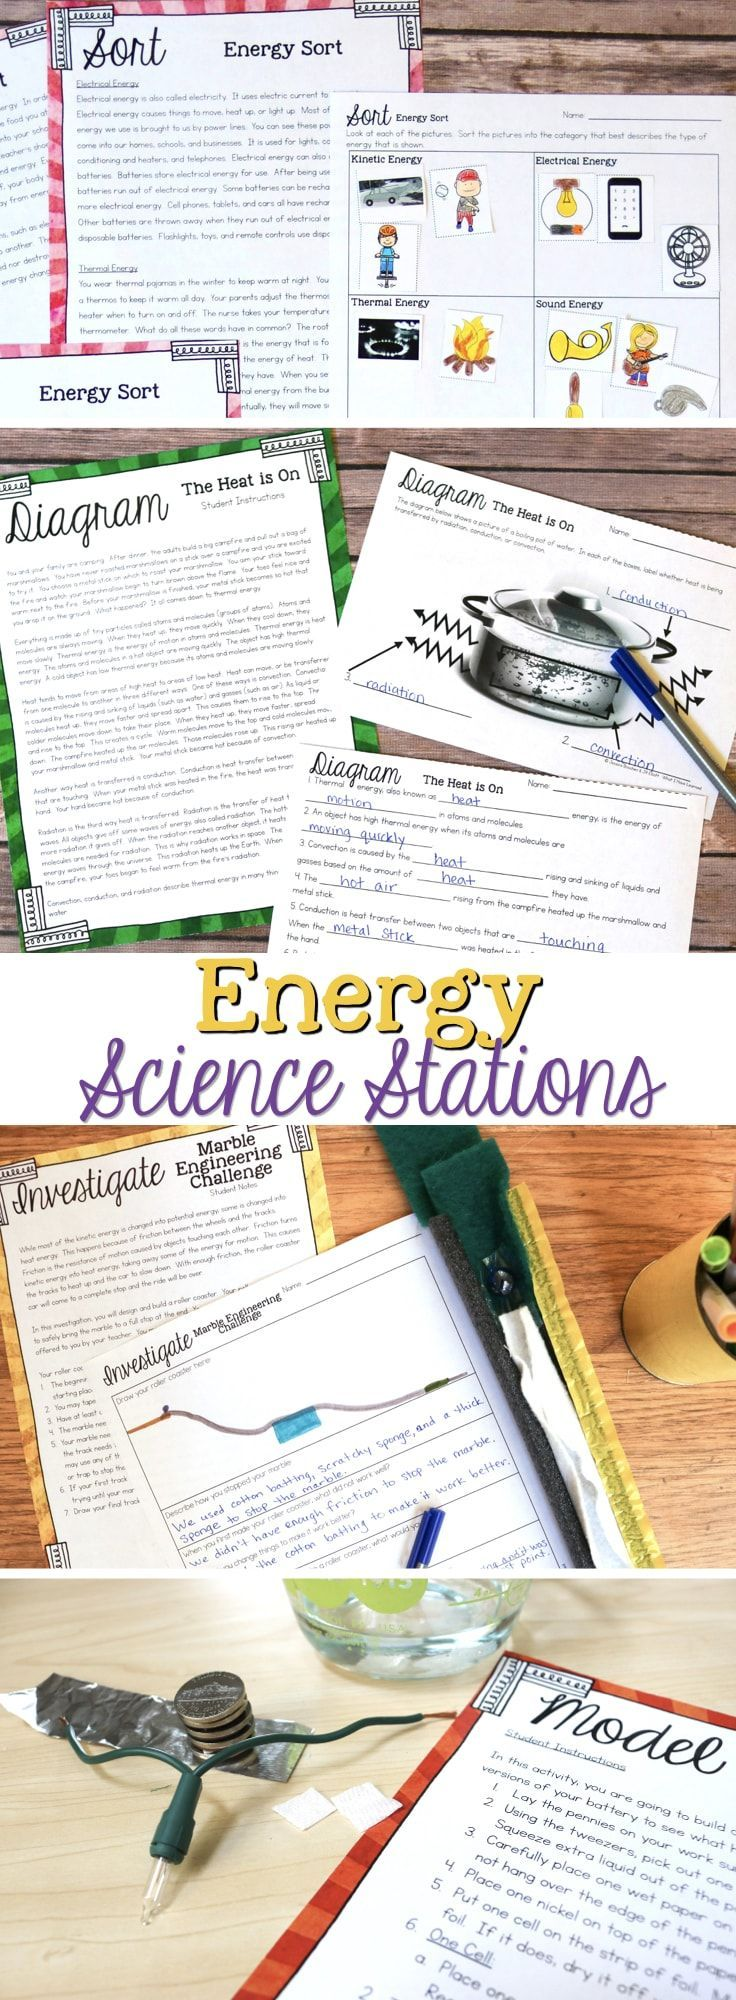 Energy Science Stations that help students gain a robust understanding of energy, energy transfer, and conservation of energy. Includes a variety of energy science activities for fourth grade science stations. Electrical energy, thermal energy, potential energy.